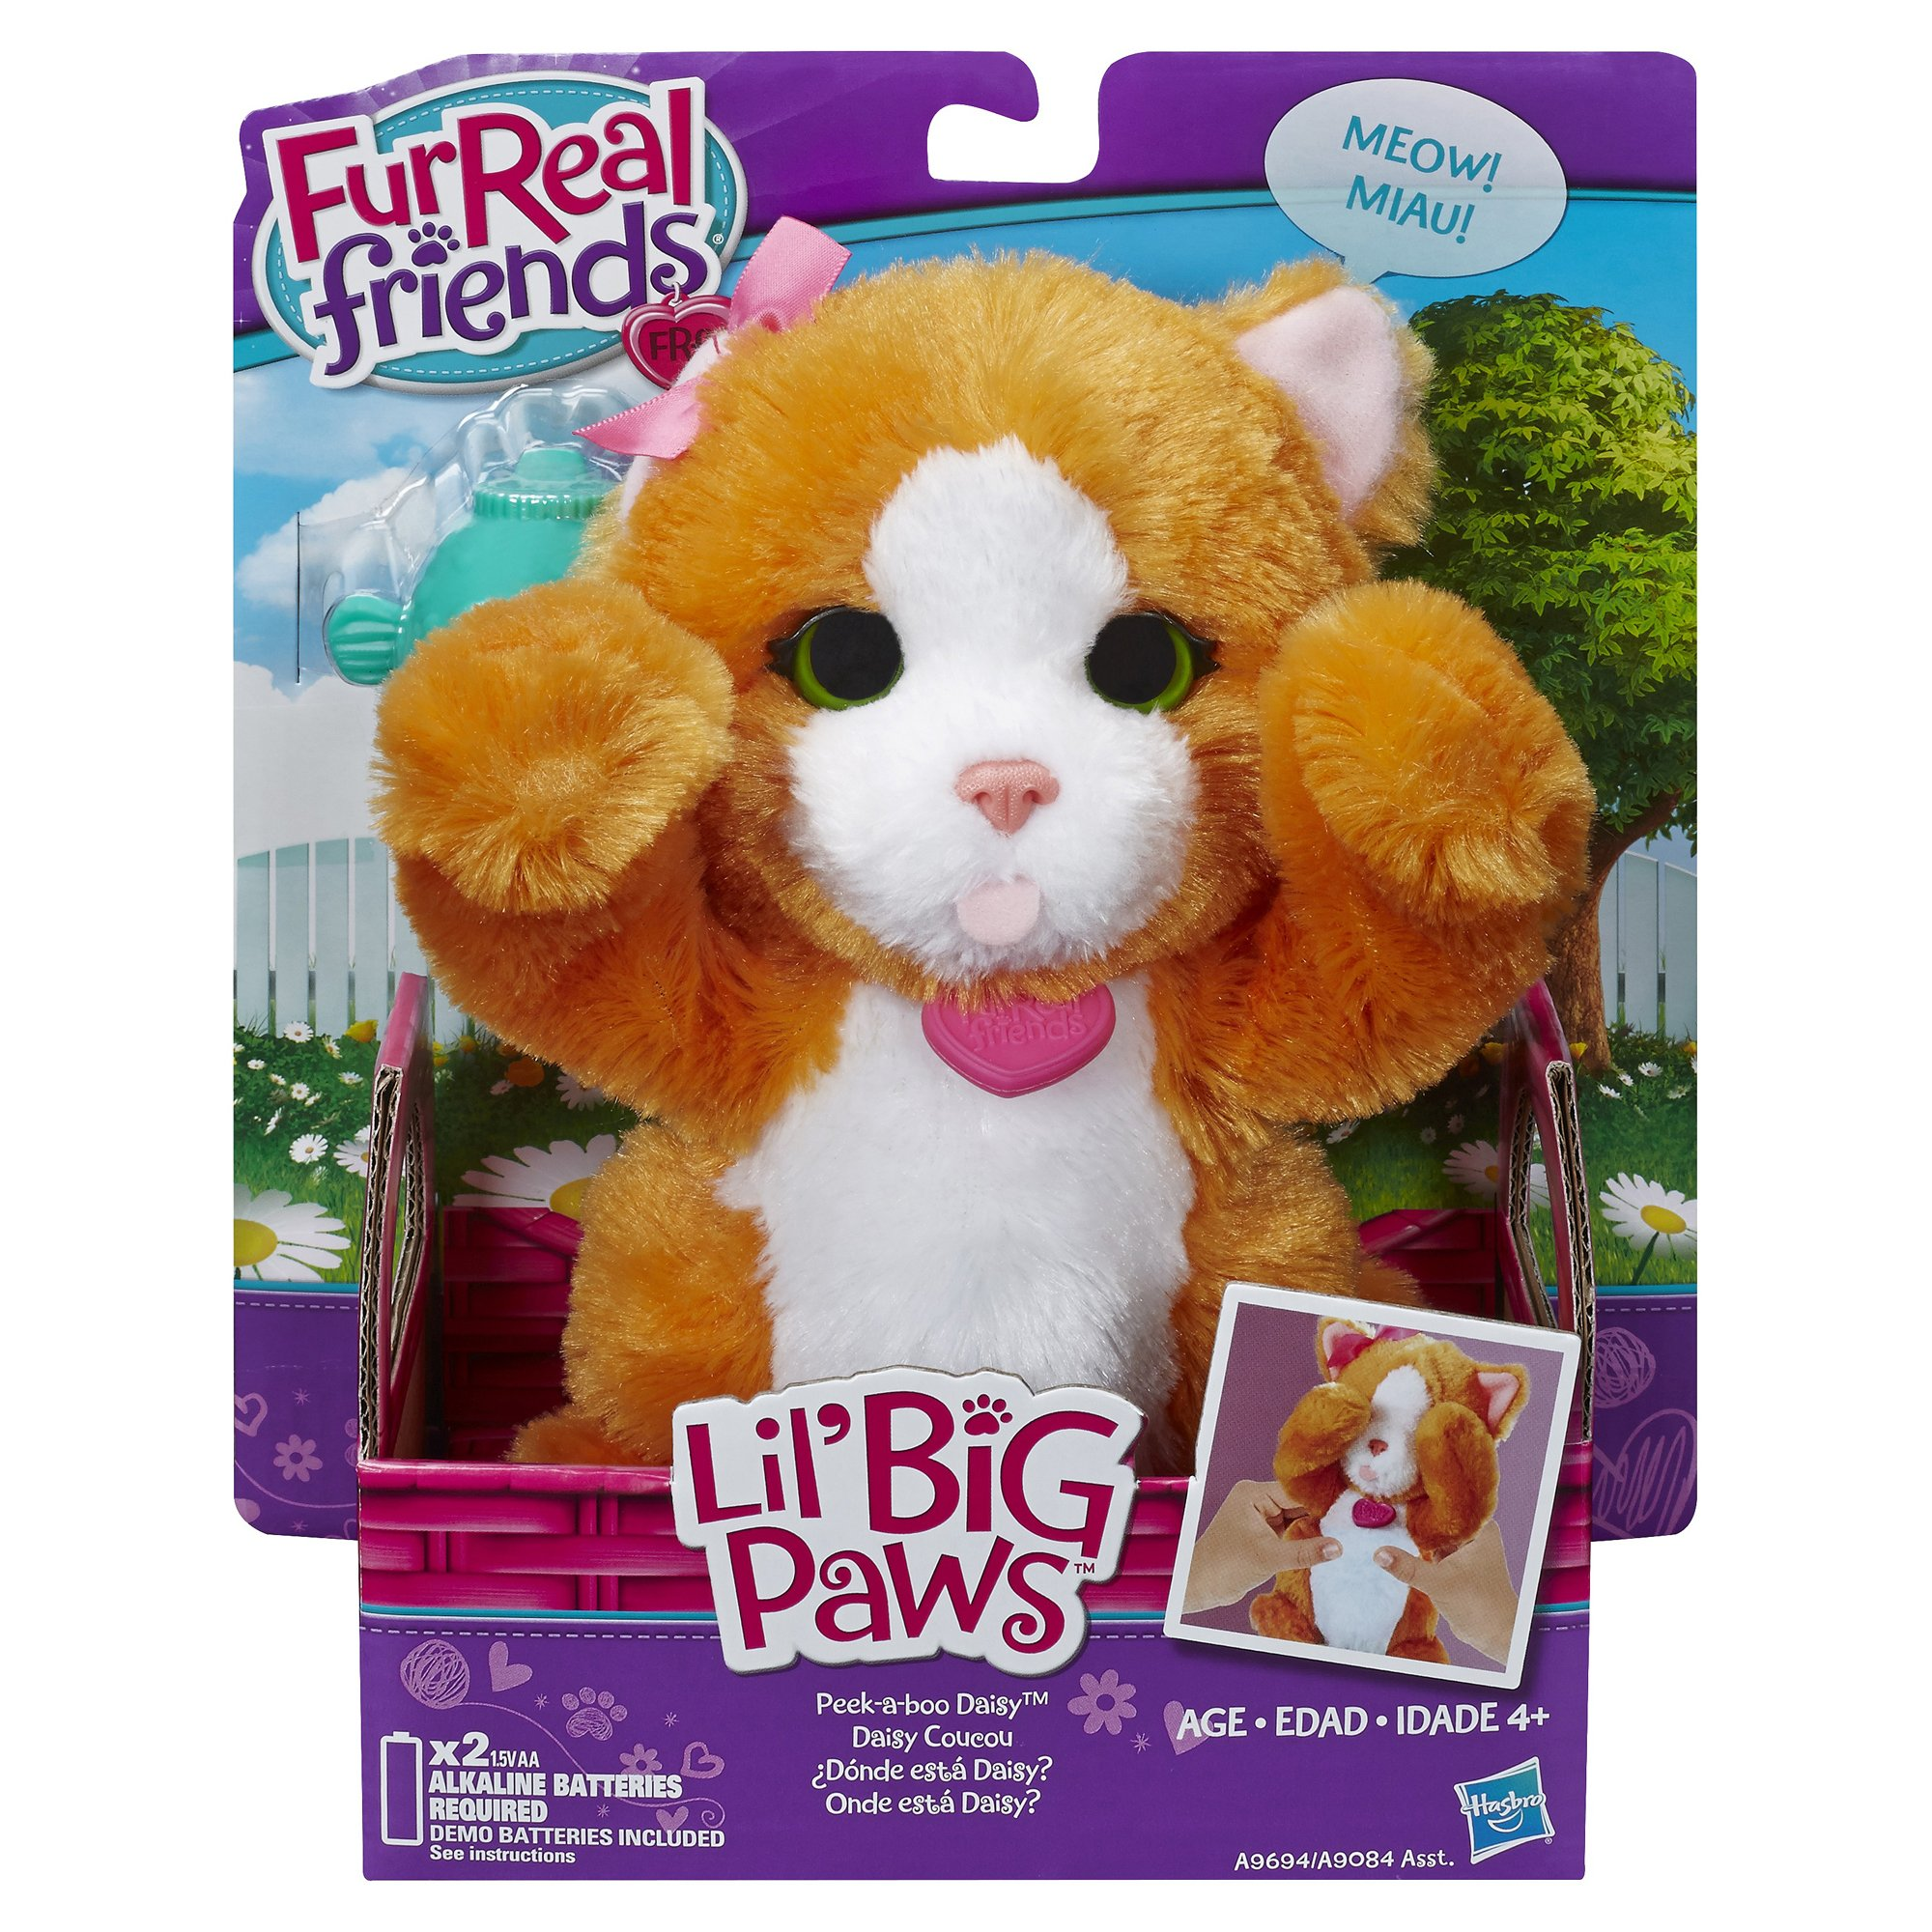 FurReal Friends Li'l Big Paws Peek-a-boo Daisy Pet by FurReal (Image #2)